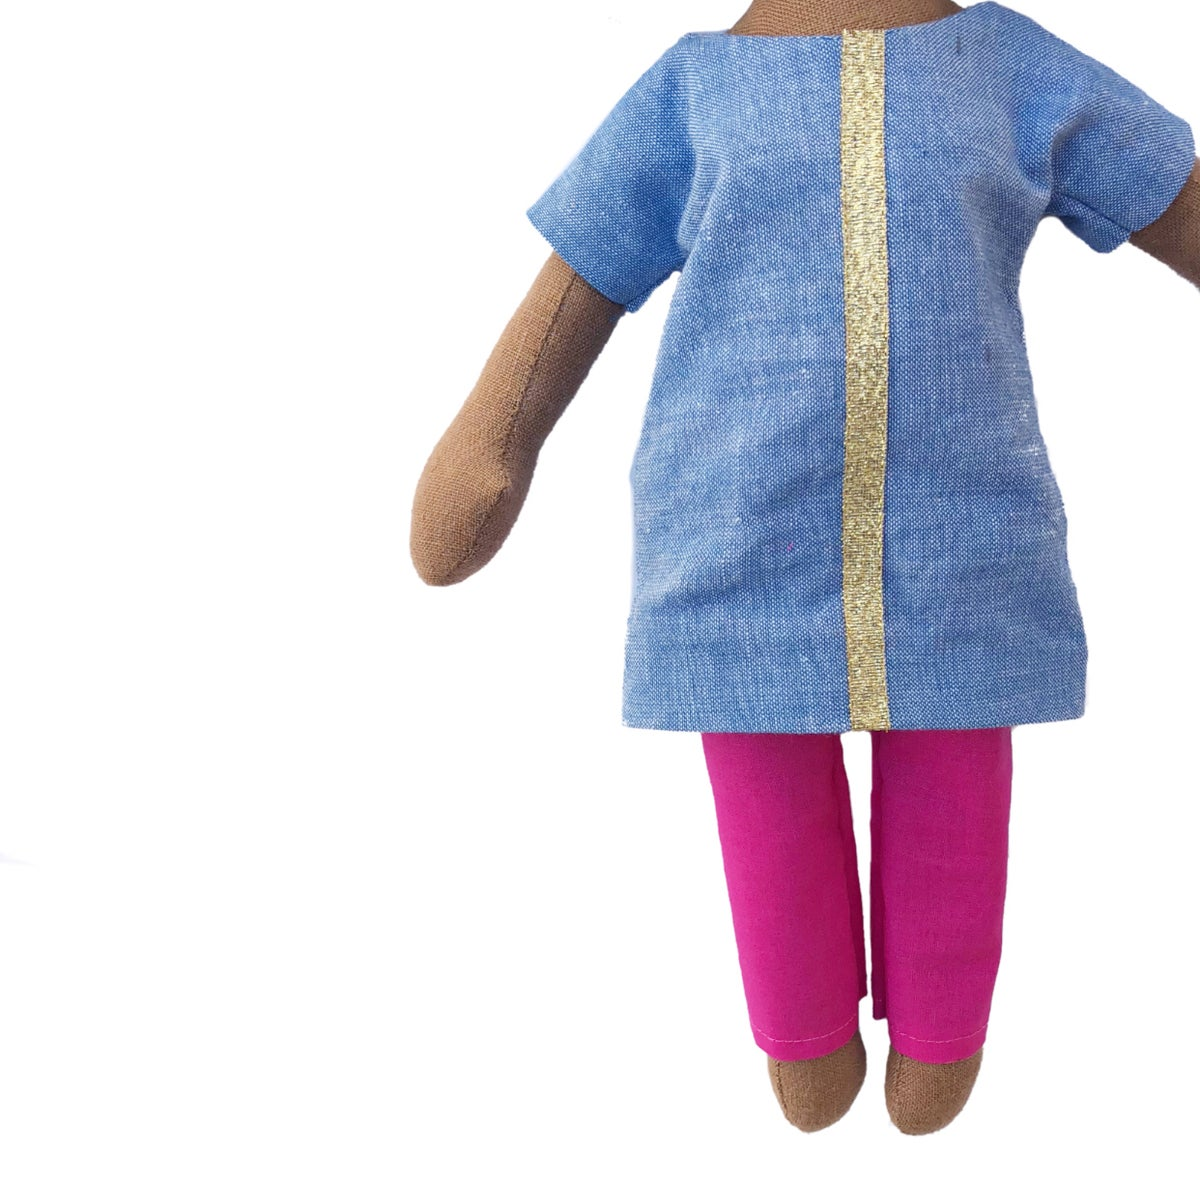 Image of Blue tunic w| pink pant - Doll Accessory